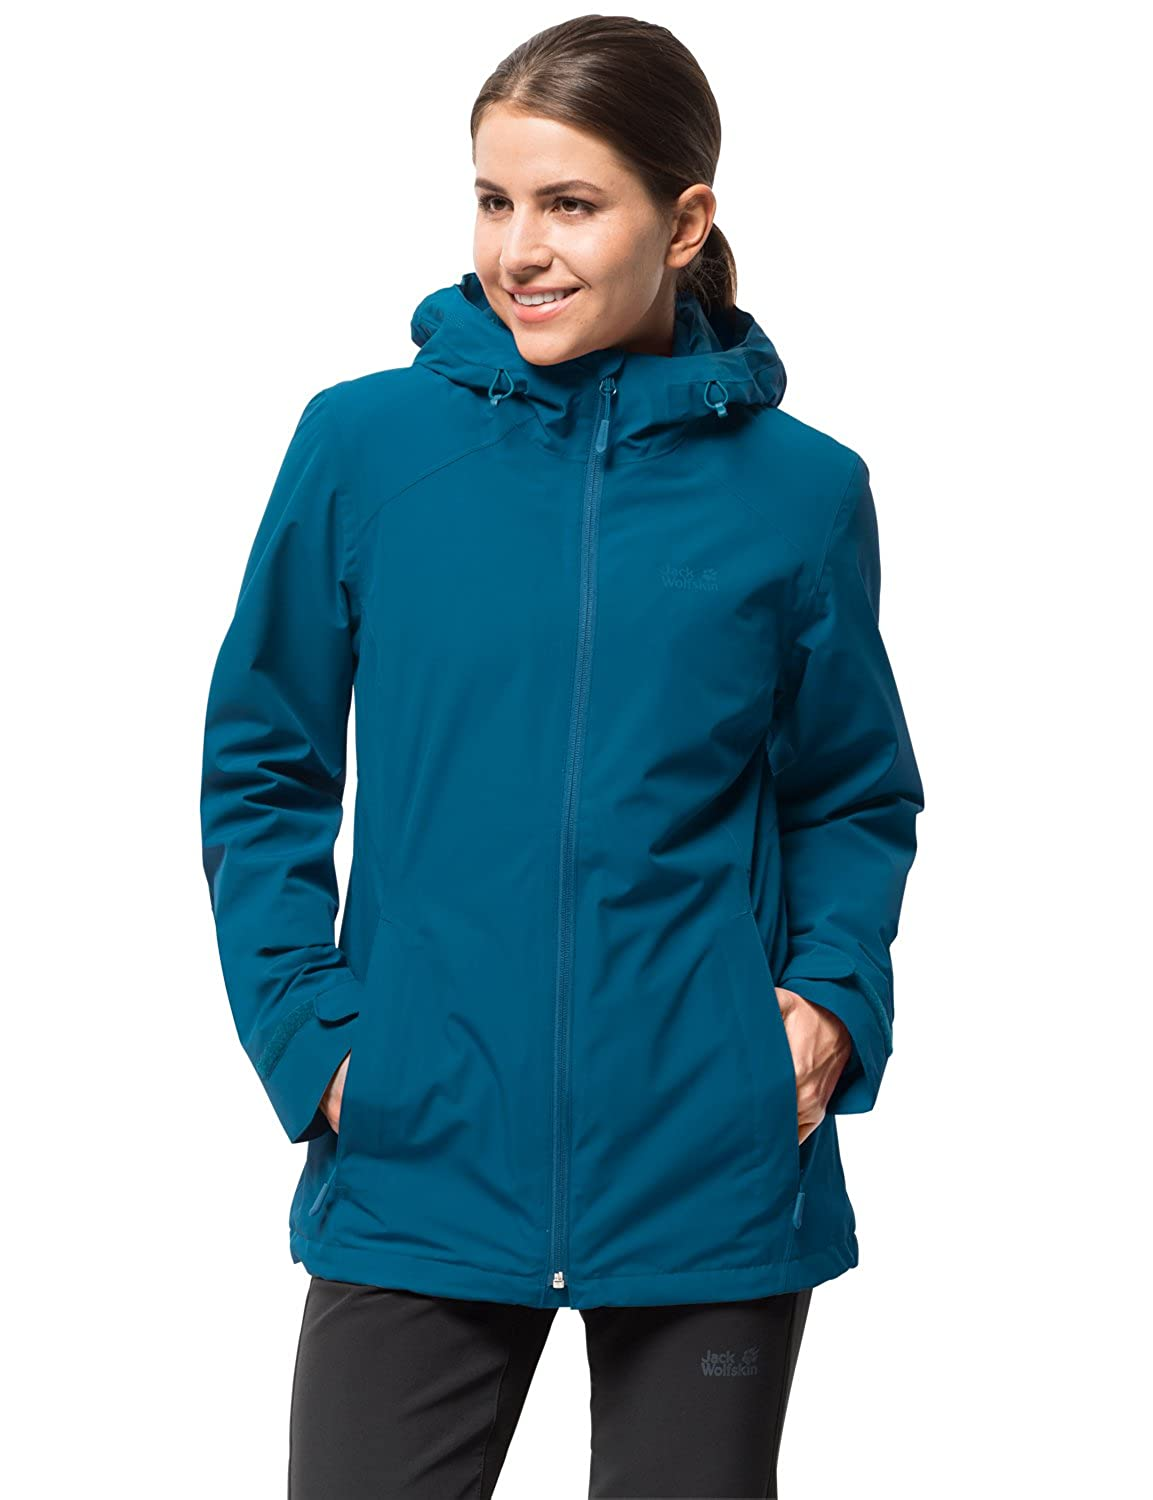 Celestial bluee Jack Wolfskin Women's Norrland 3in1 W Waterproof Insulated Jacket